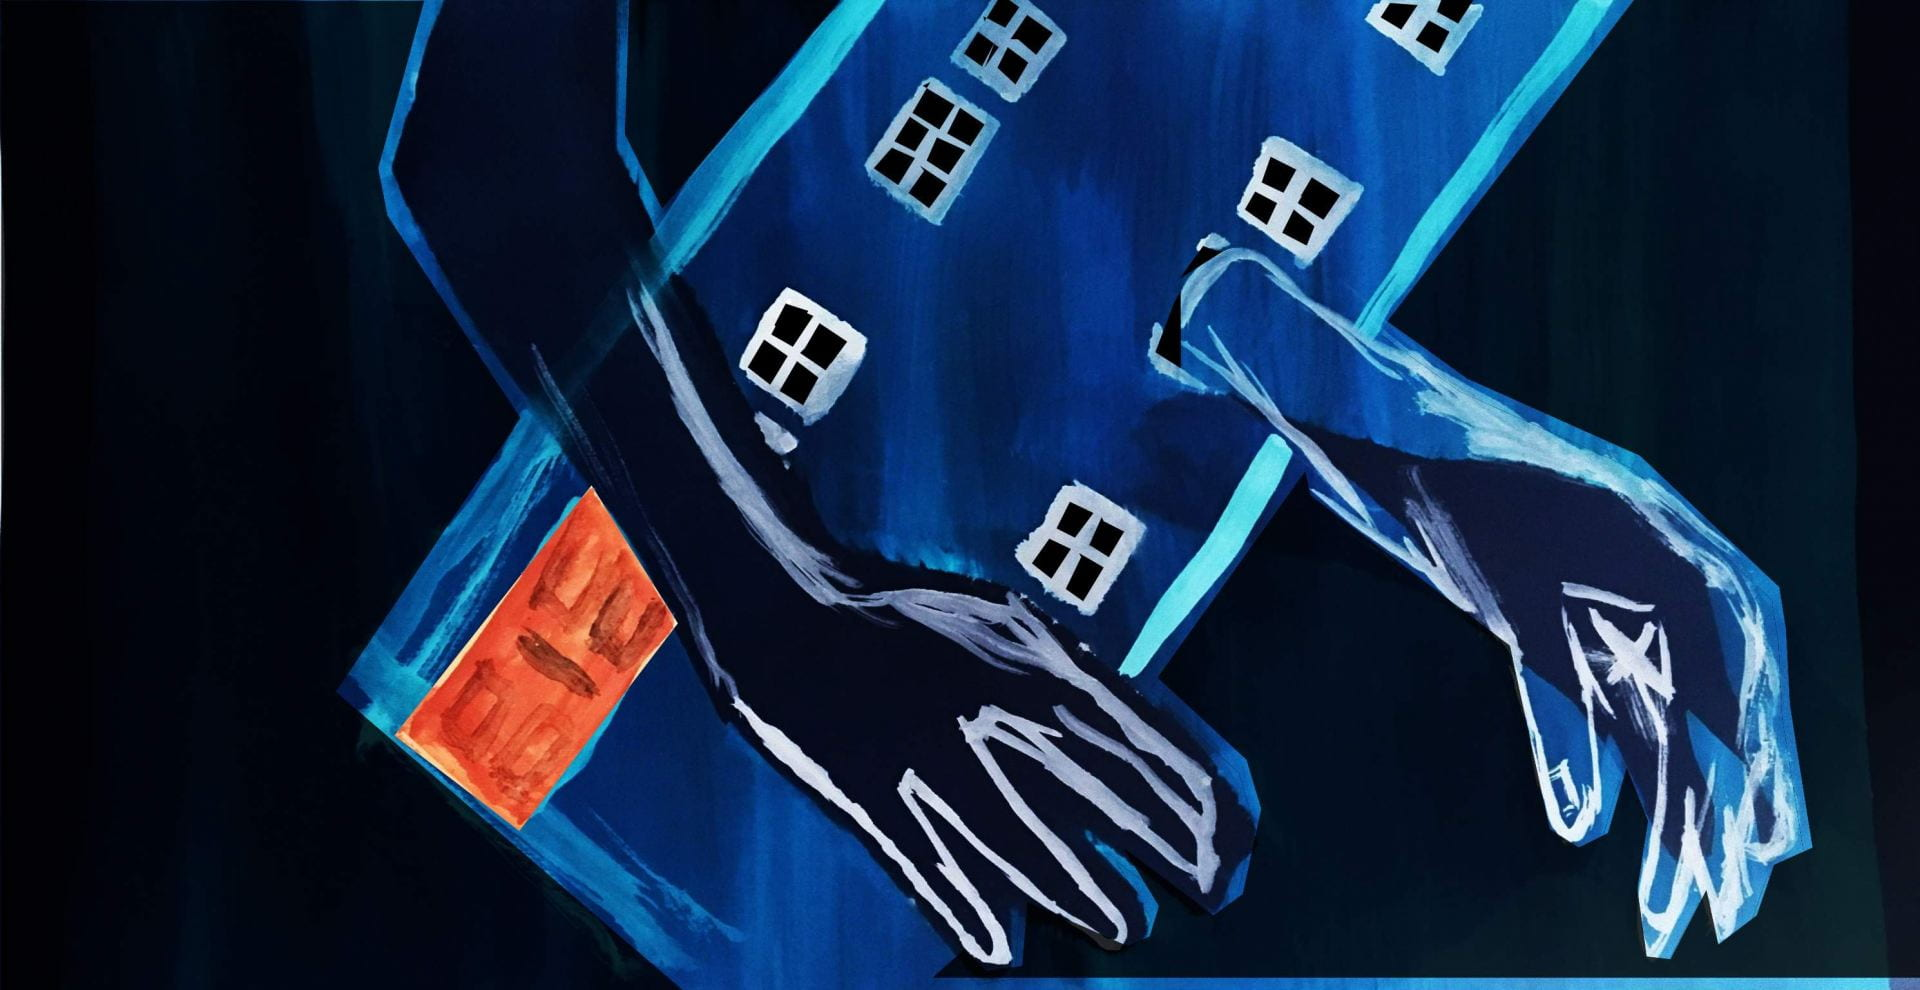 Illustration of a blue building with arms extended.